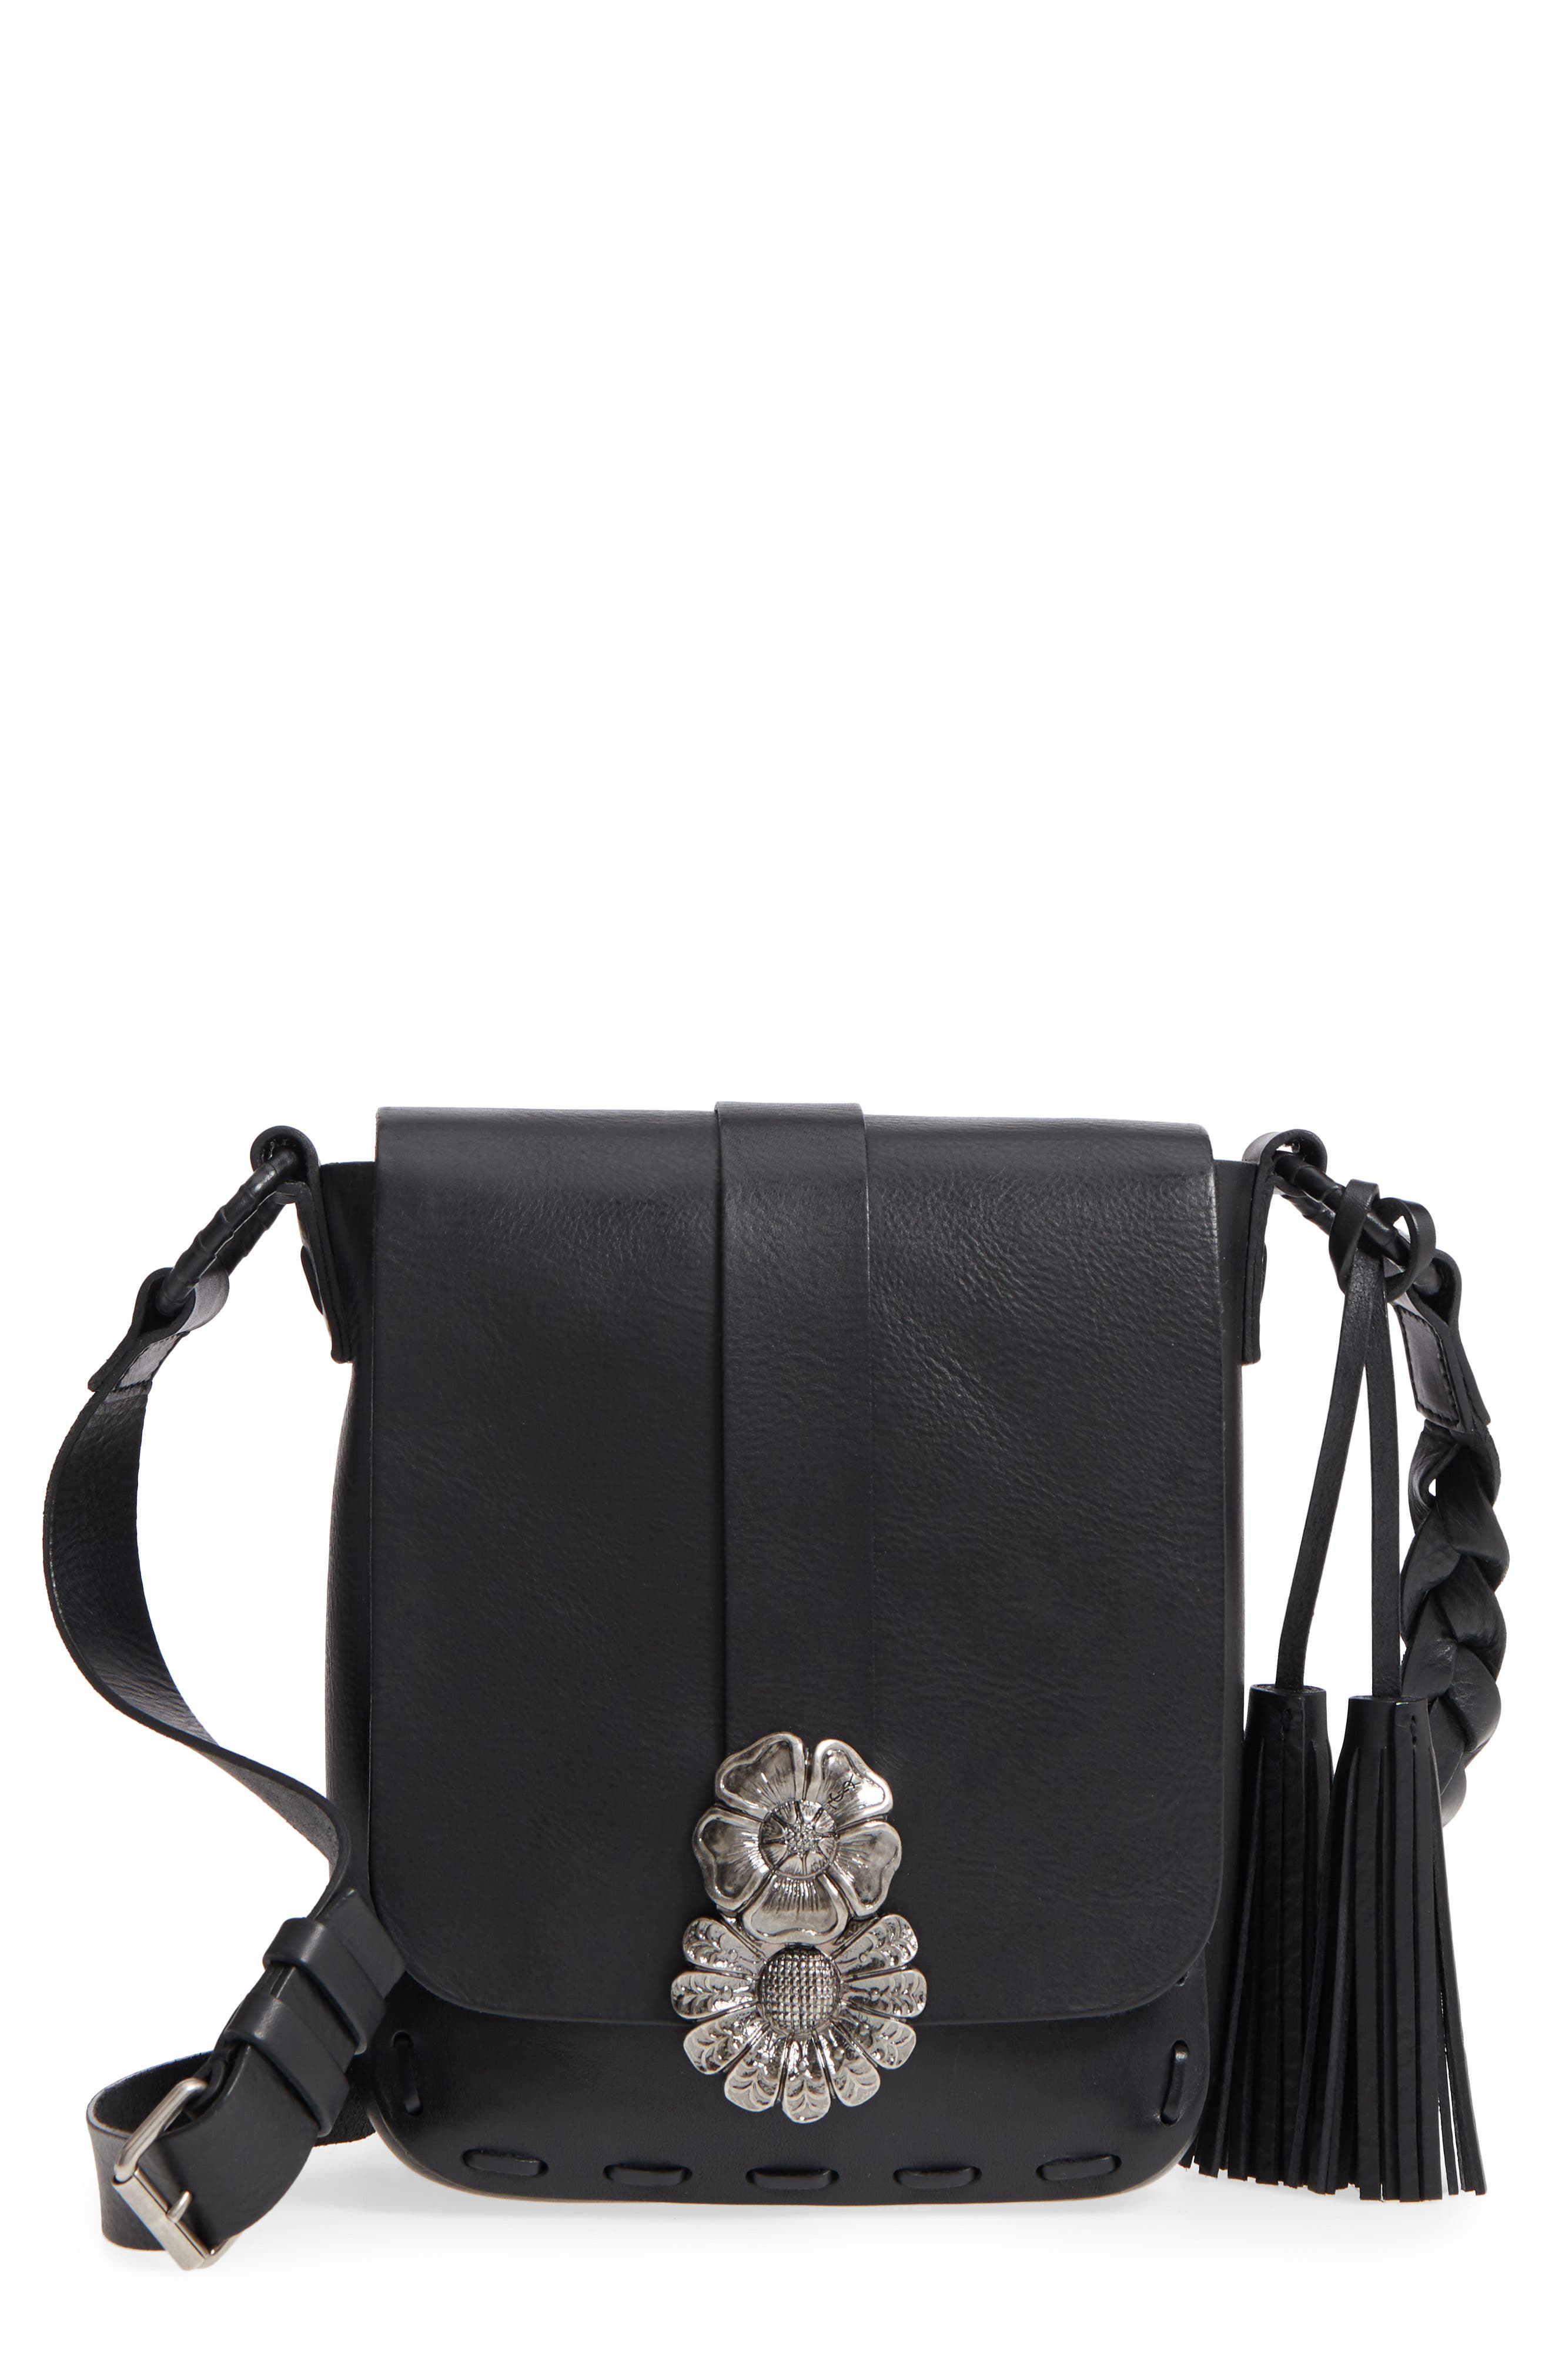 Floral Clasp Leather Crossbody Bag,                             Main thumbnail 1, color,                             001